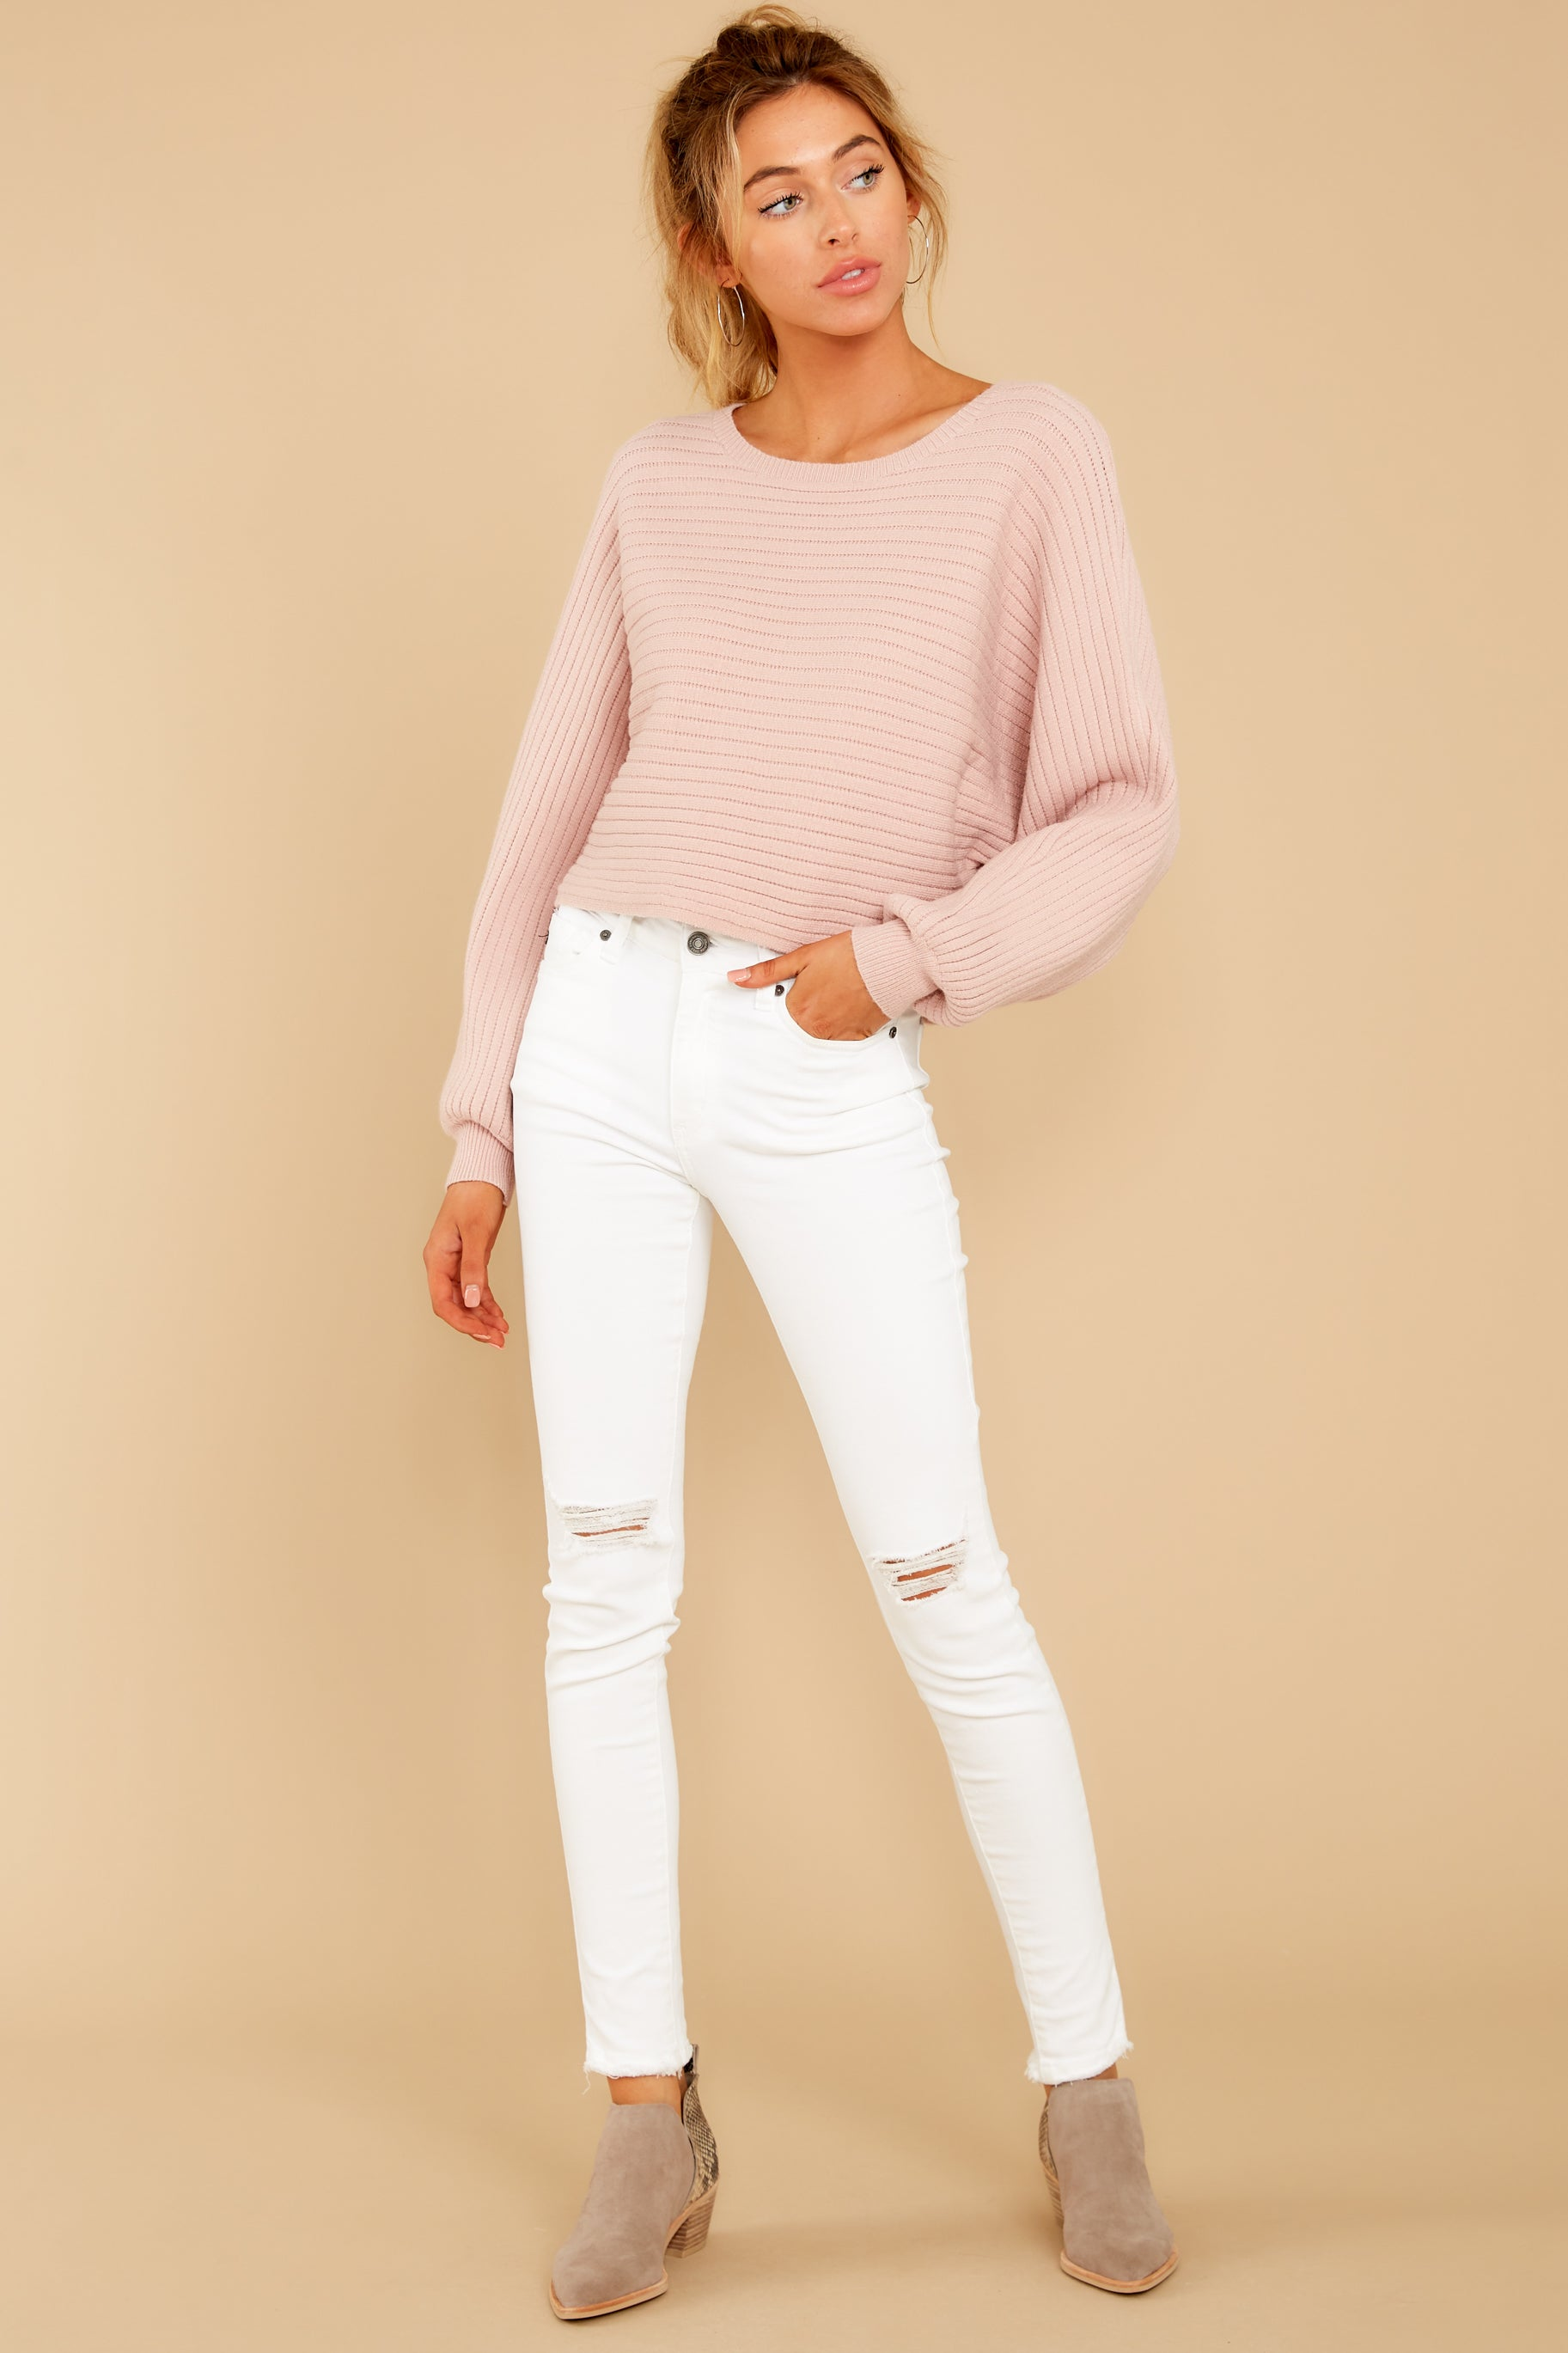 2 Just Your Type Light Pink Crop Sweater at reddressboutique.com